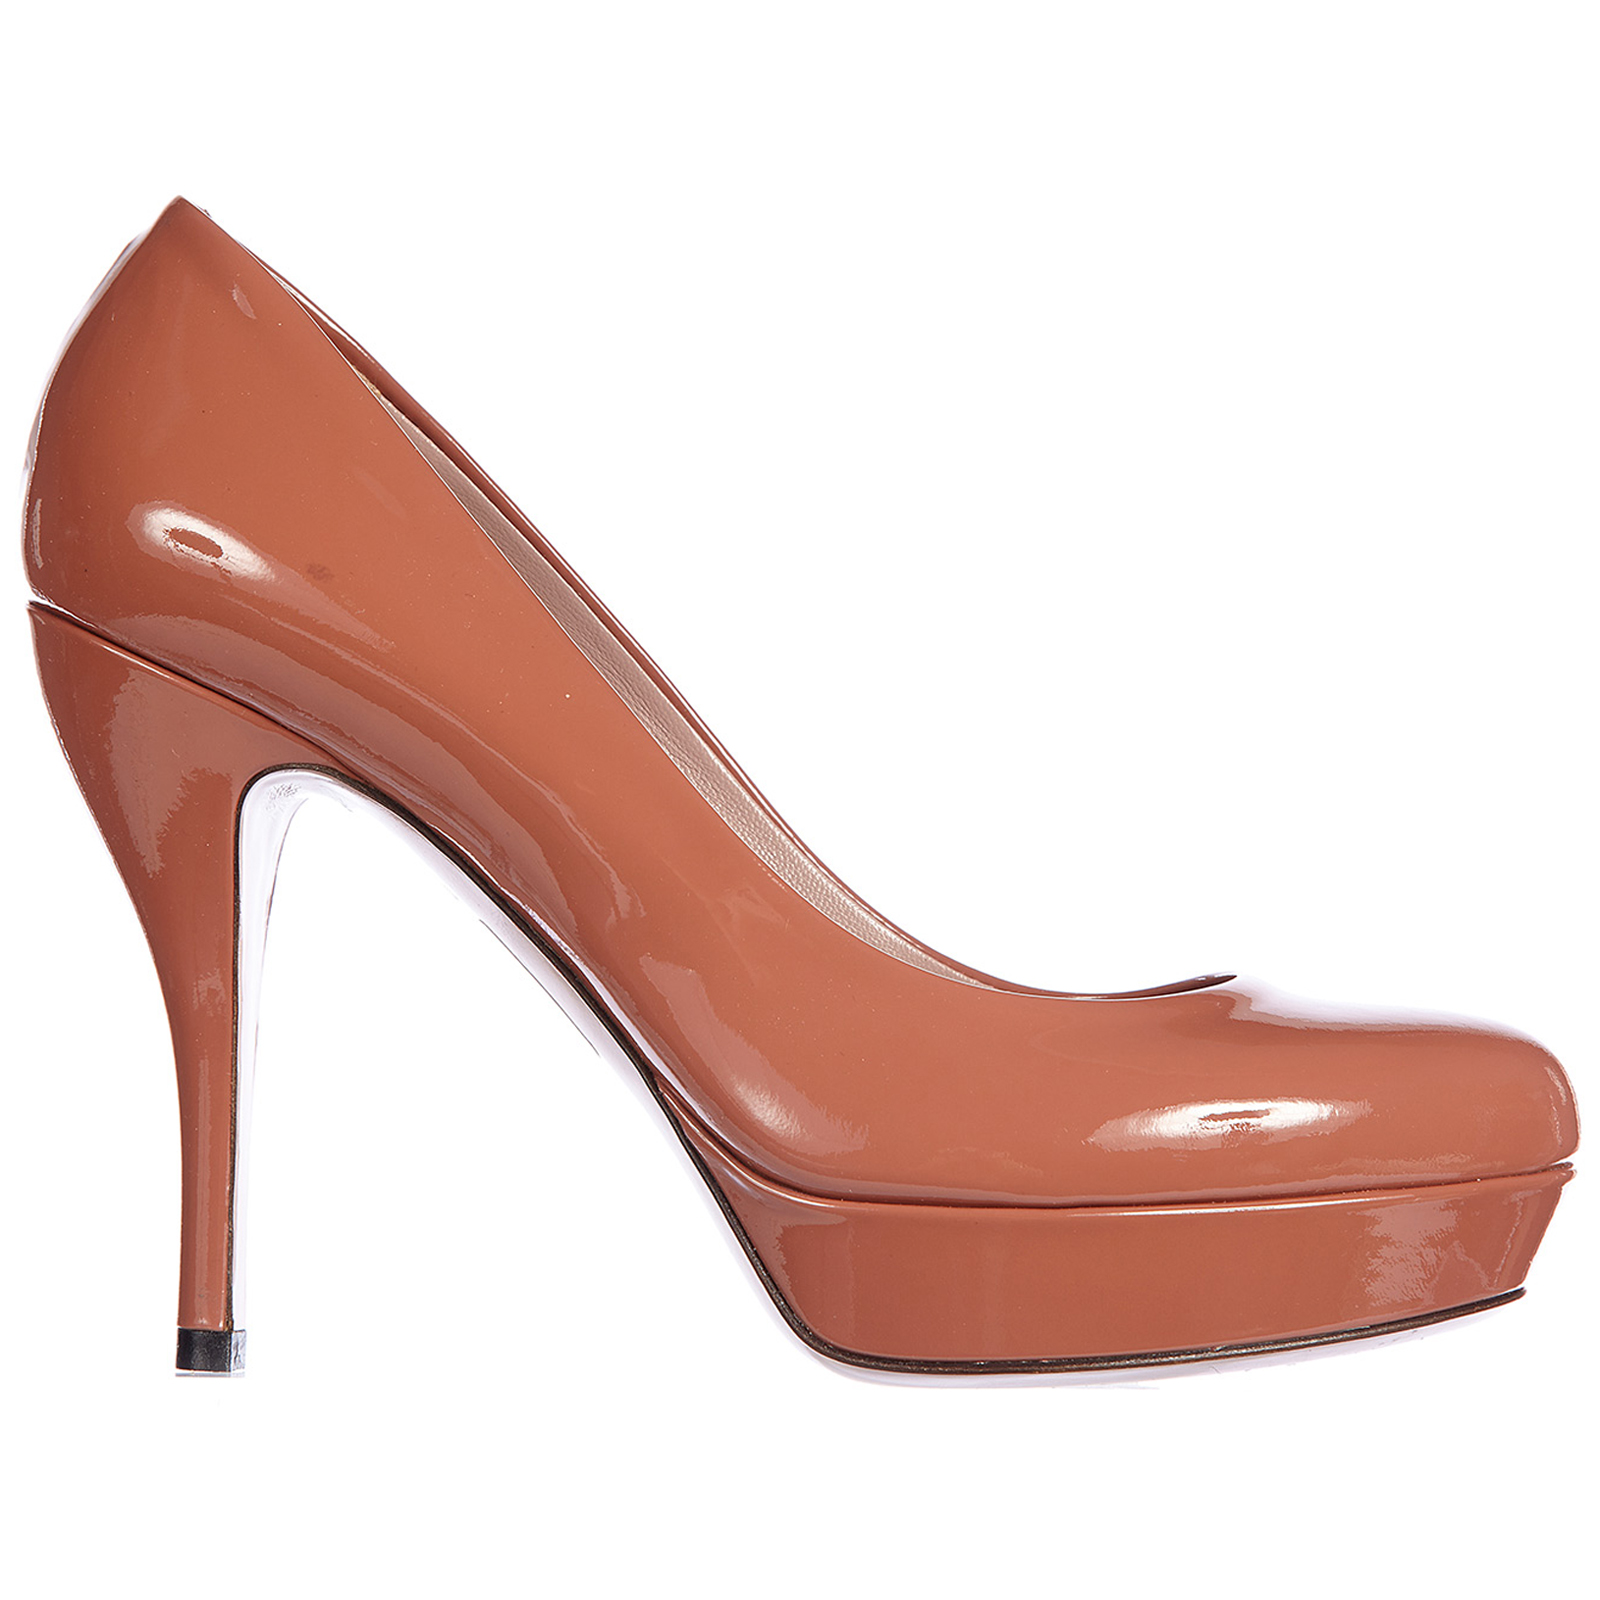 Women's leather pumps court shoes high heel crystall vernice